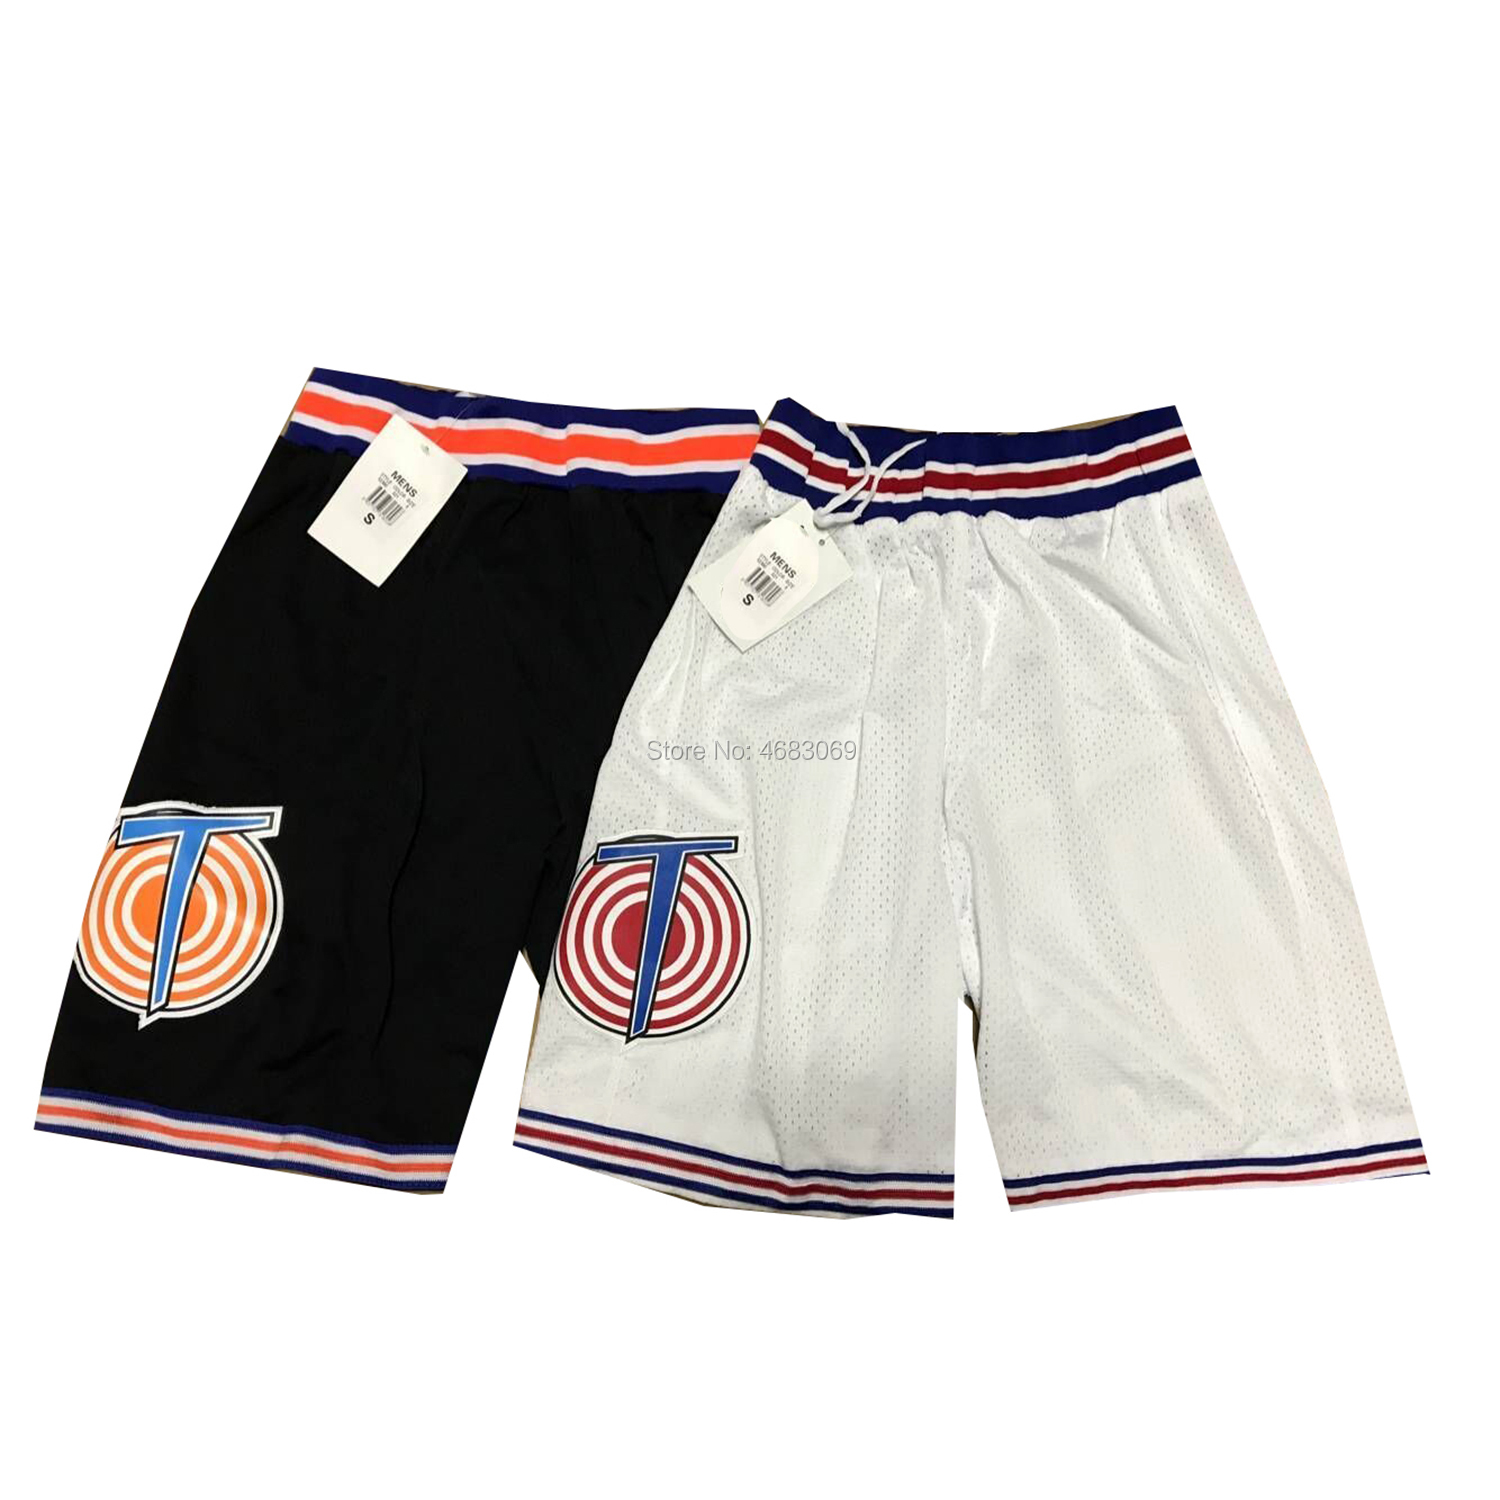 587ff6783d0752 Detail Feedback Questions about Costume Space Jam Shorts Movie Tune Squad  JORDAN LOLA BUNNY BUGS BUNNY White Black Color Basketball Short S M L XL US  STOCK ...